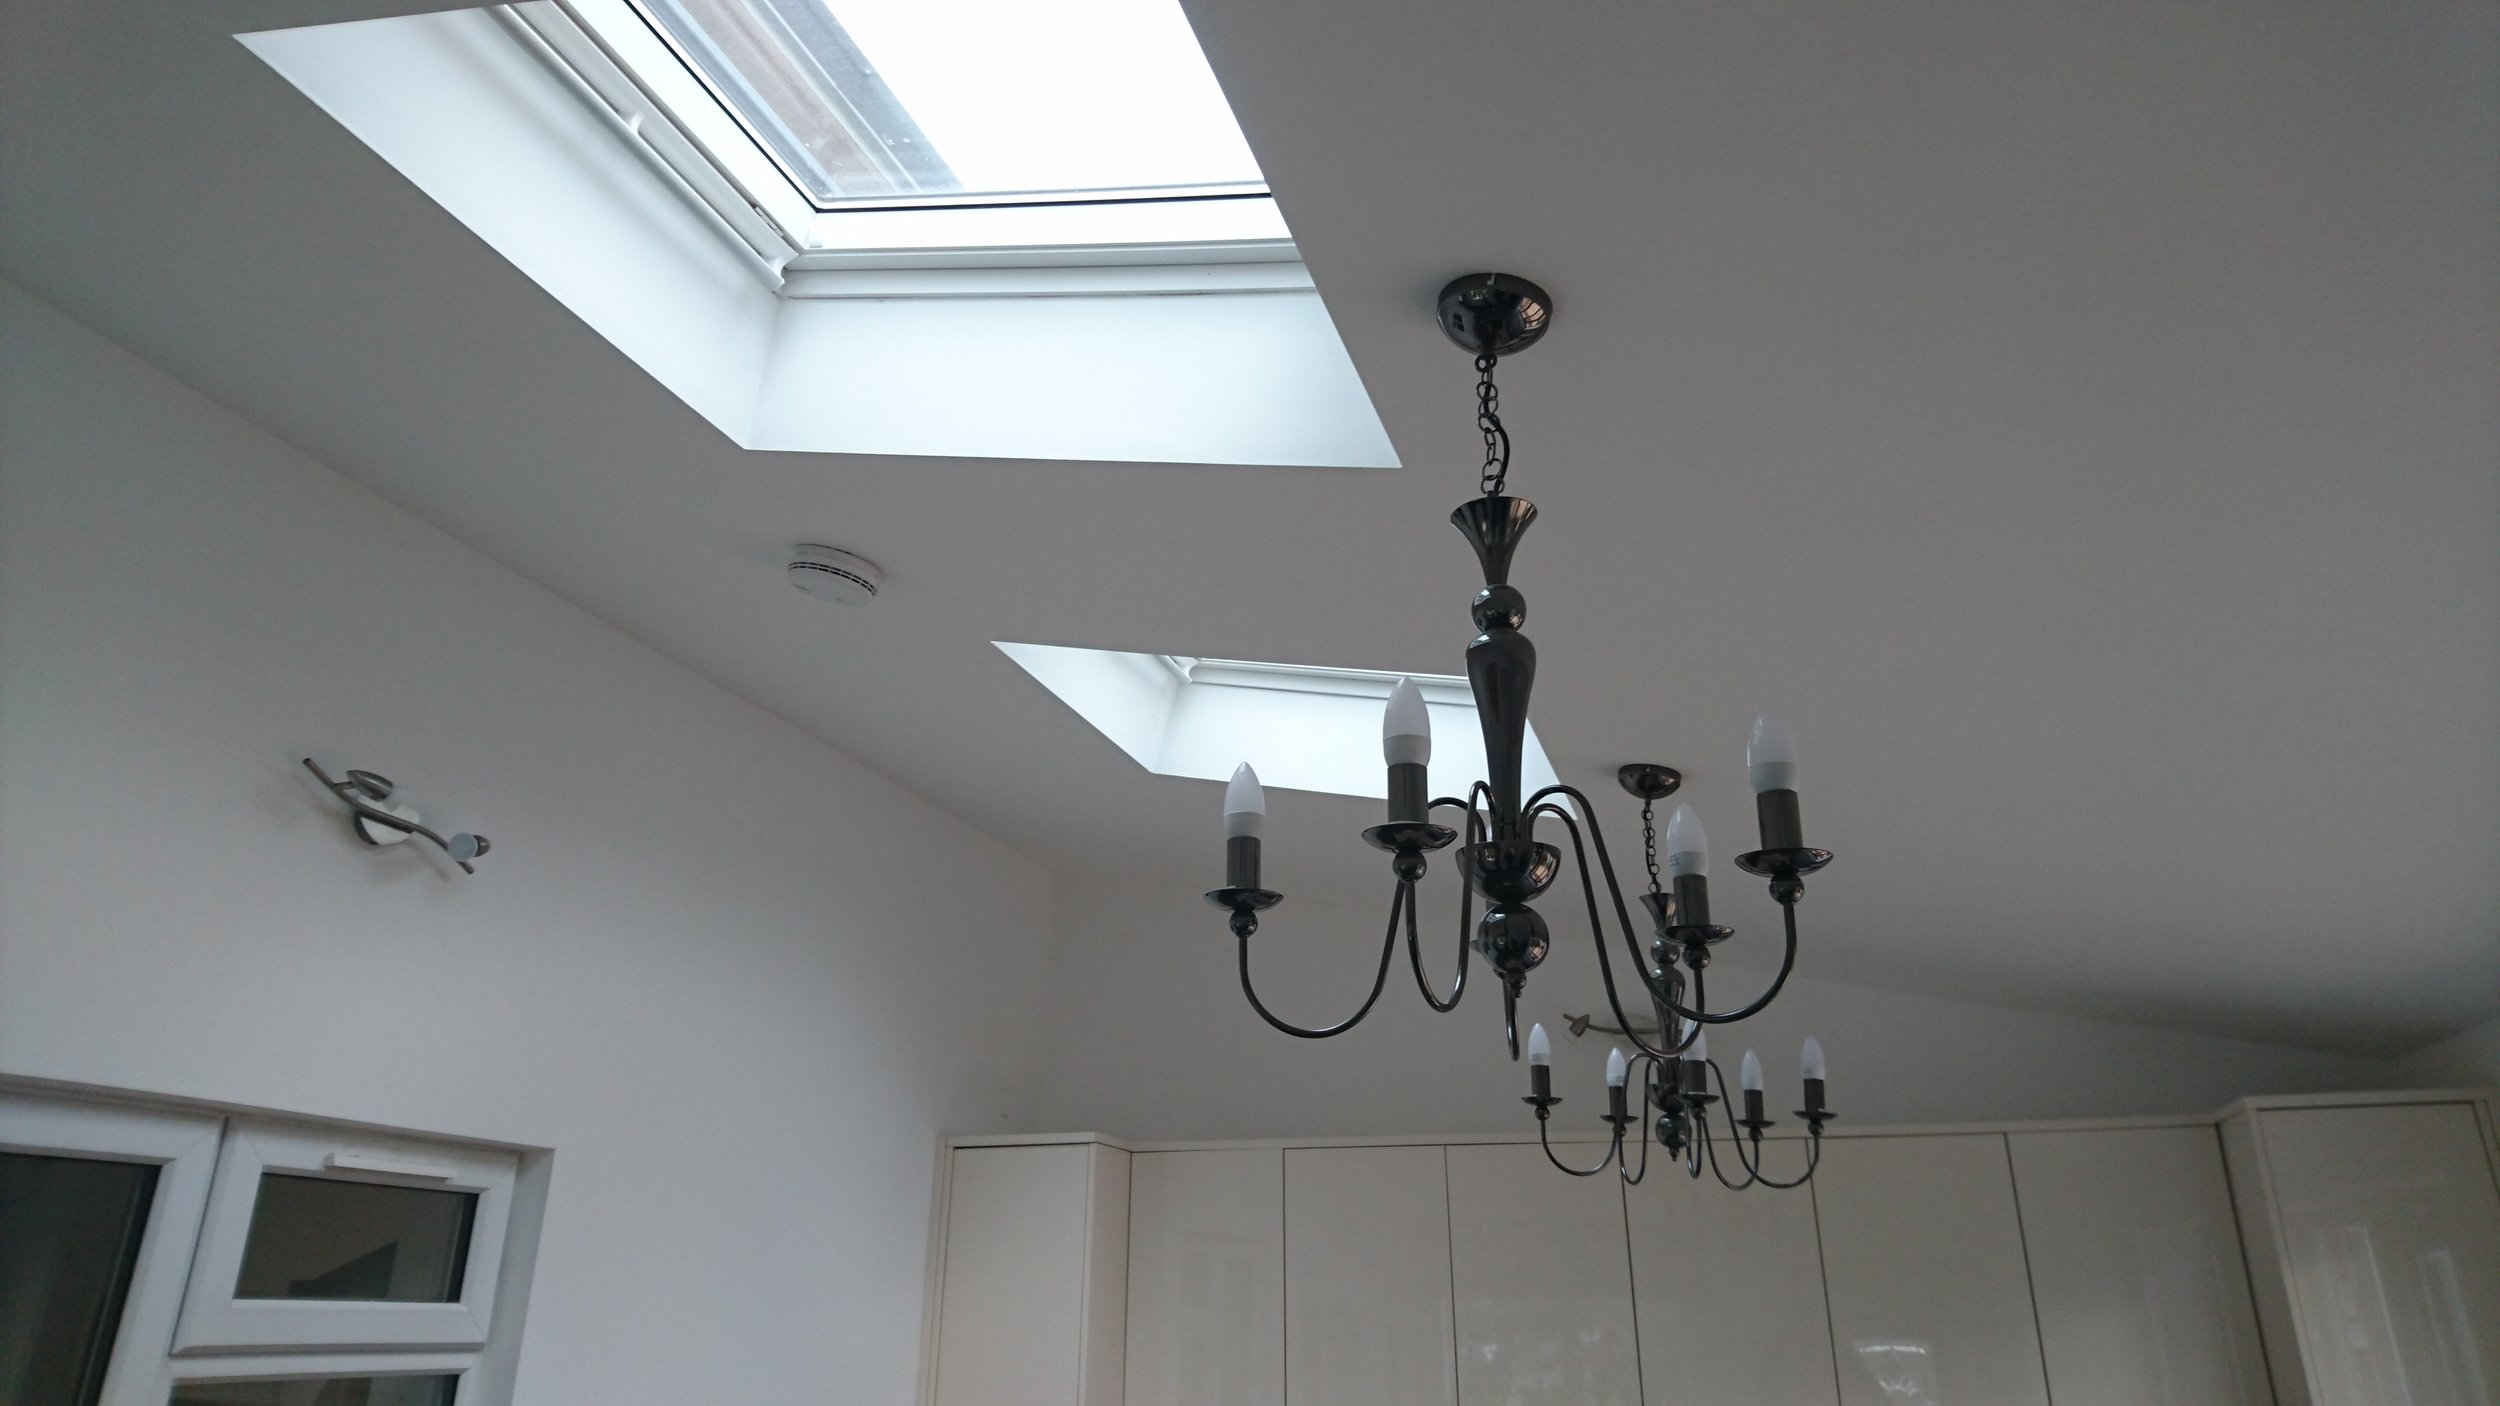 Internal view of roof lights and ceiling lighting.JPG